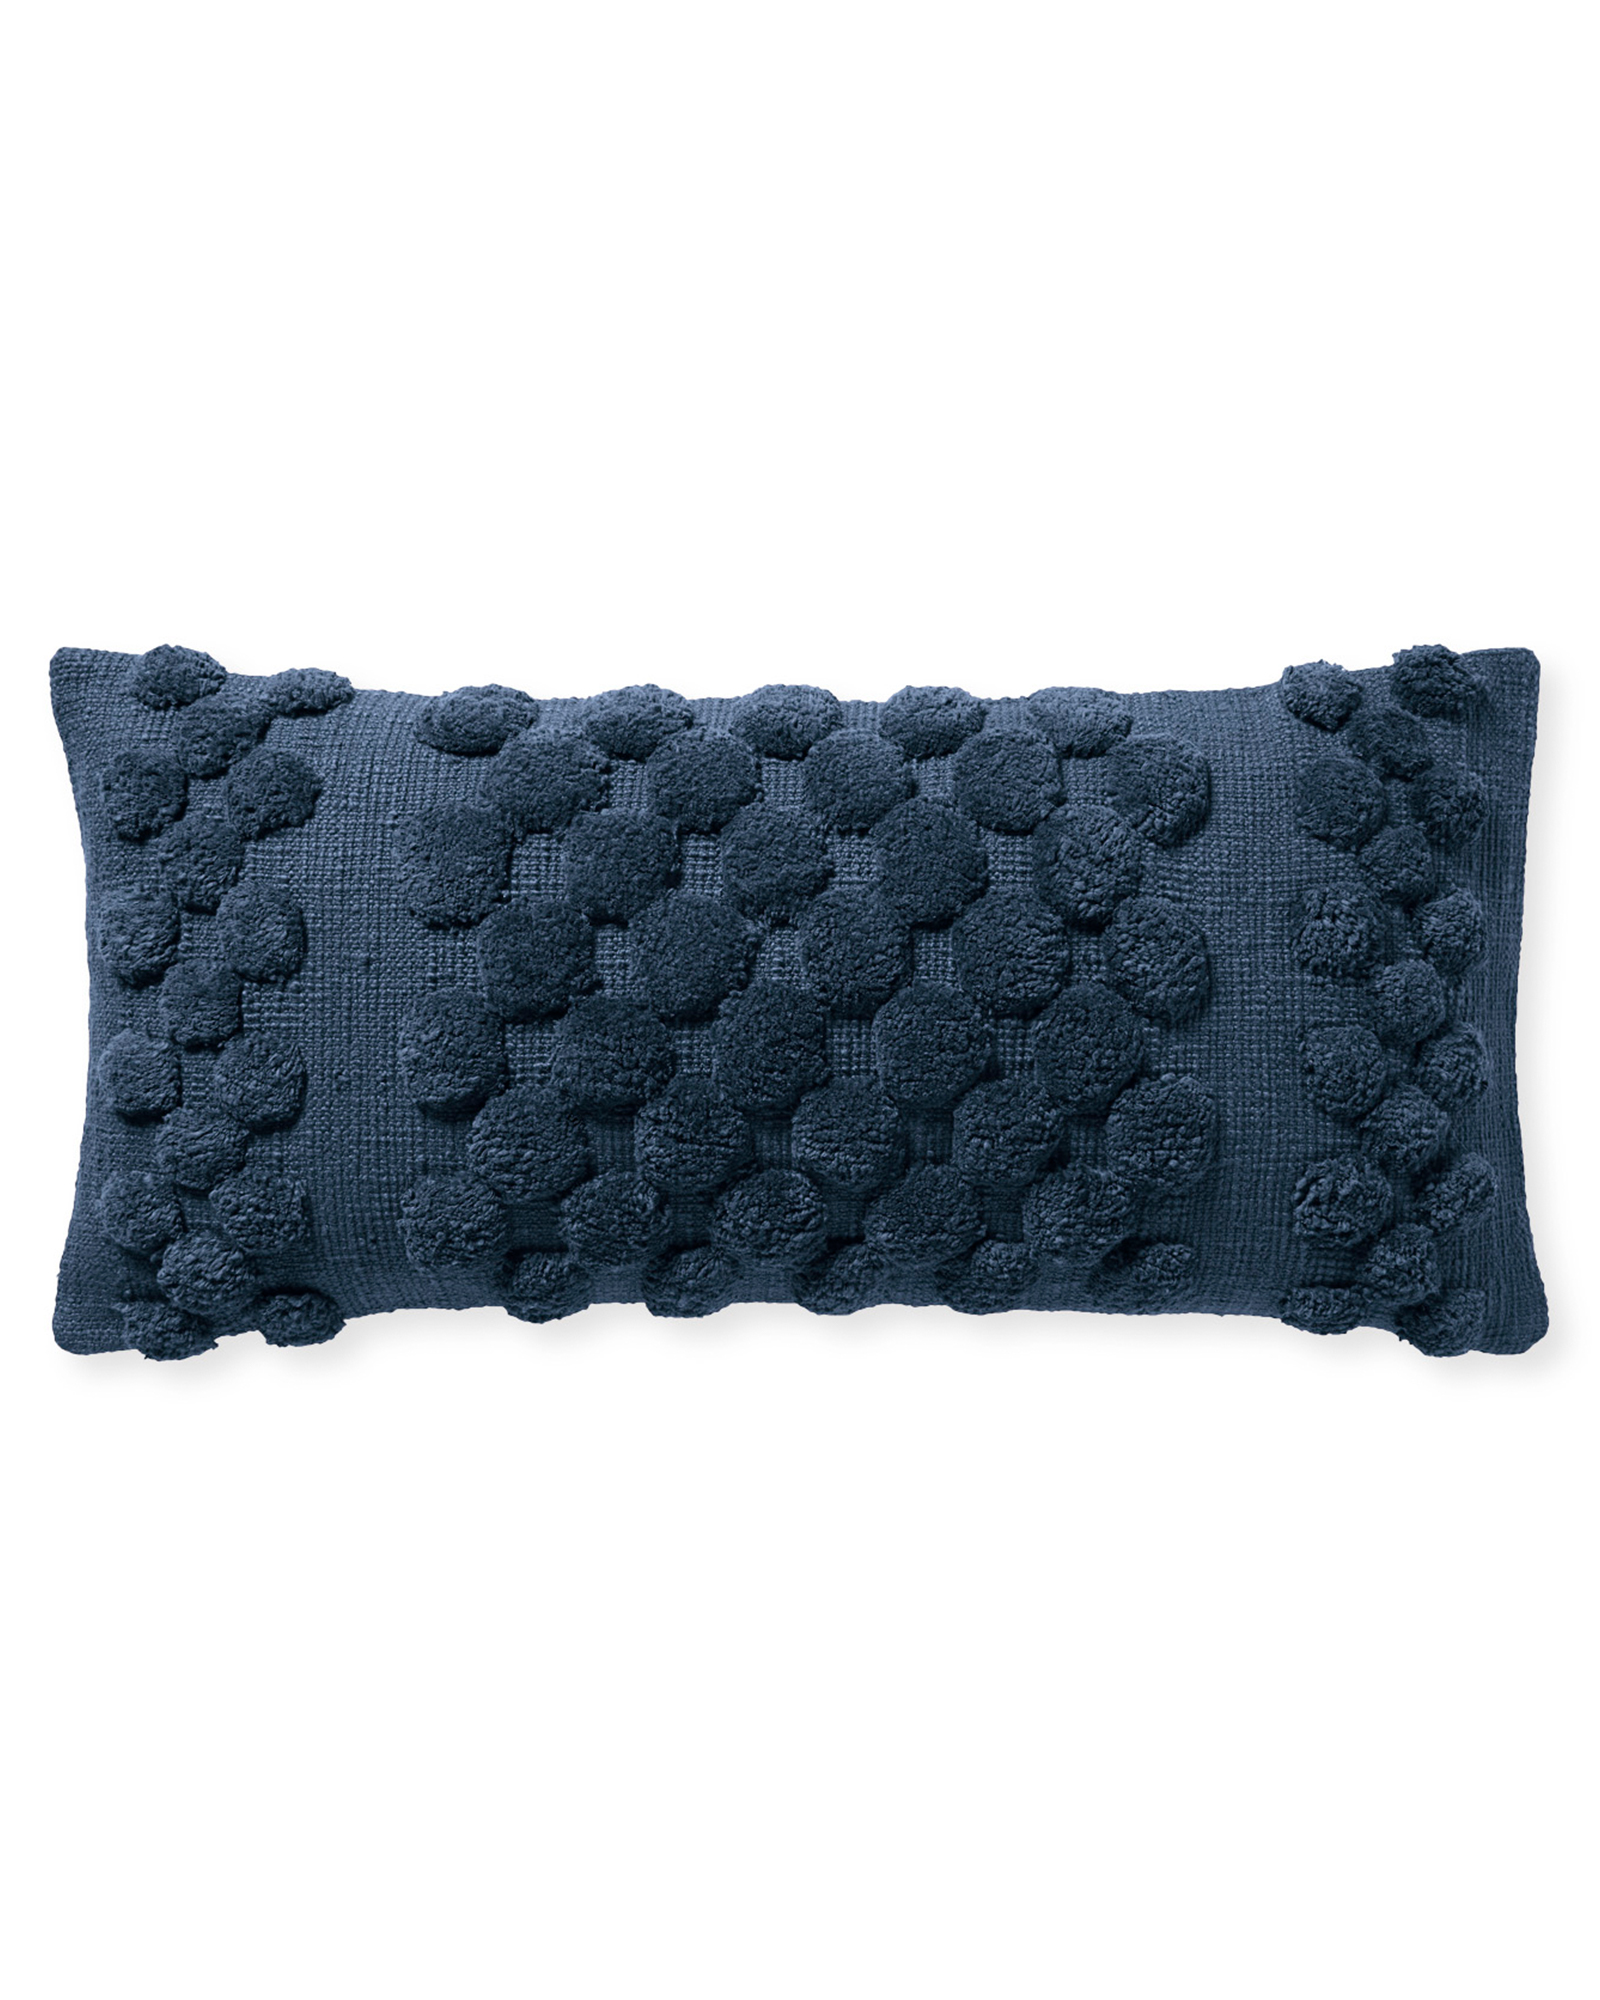 Fairfield Pillow Cover, Vintage Indigo